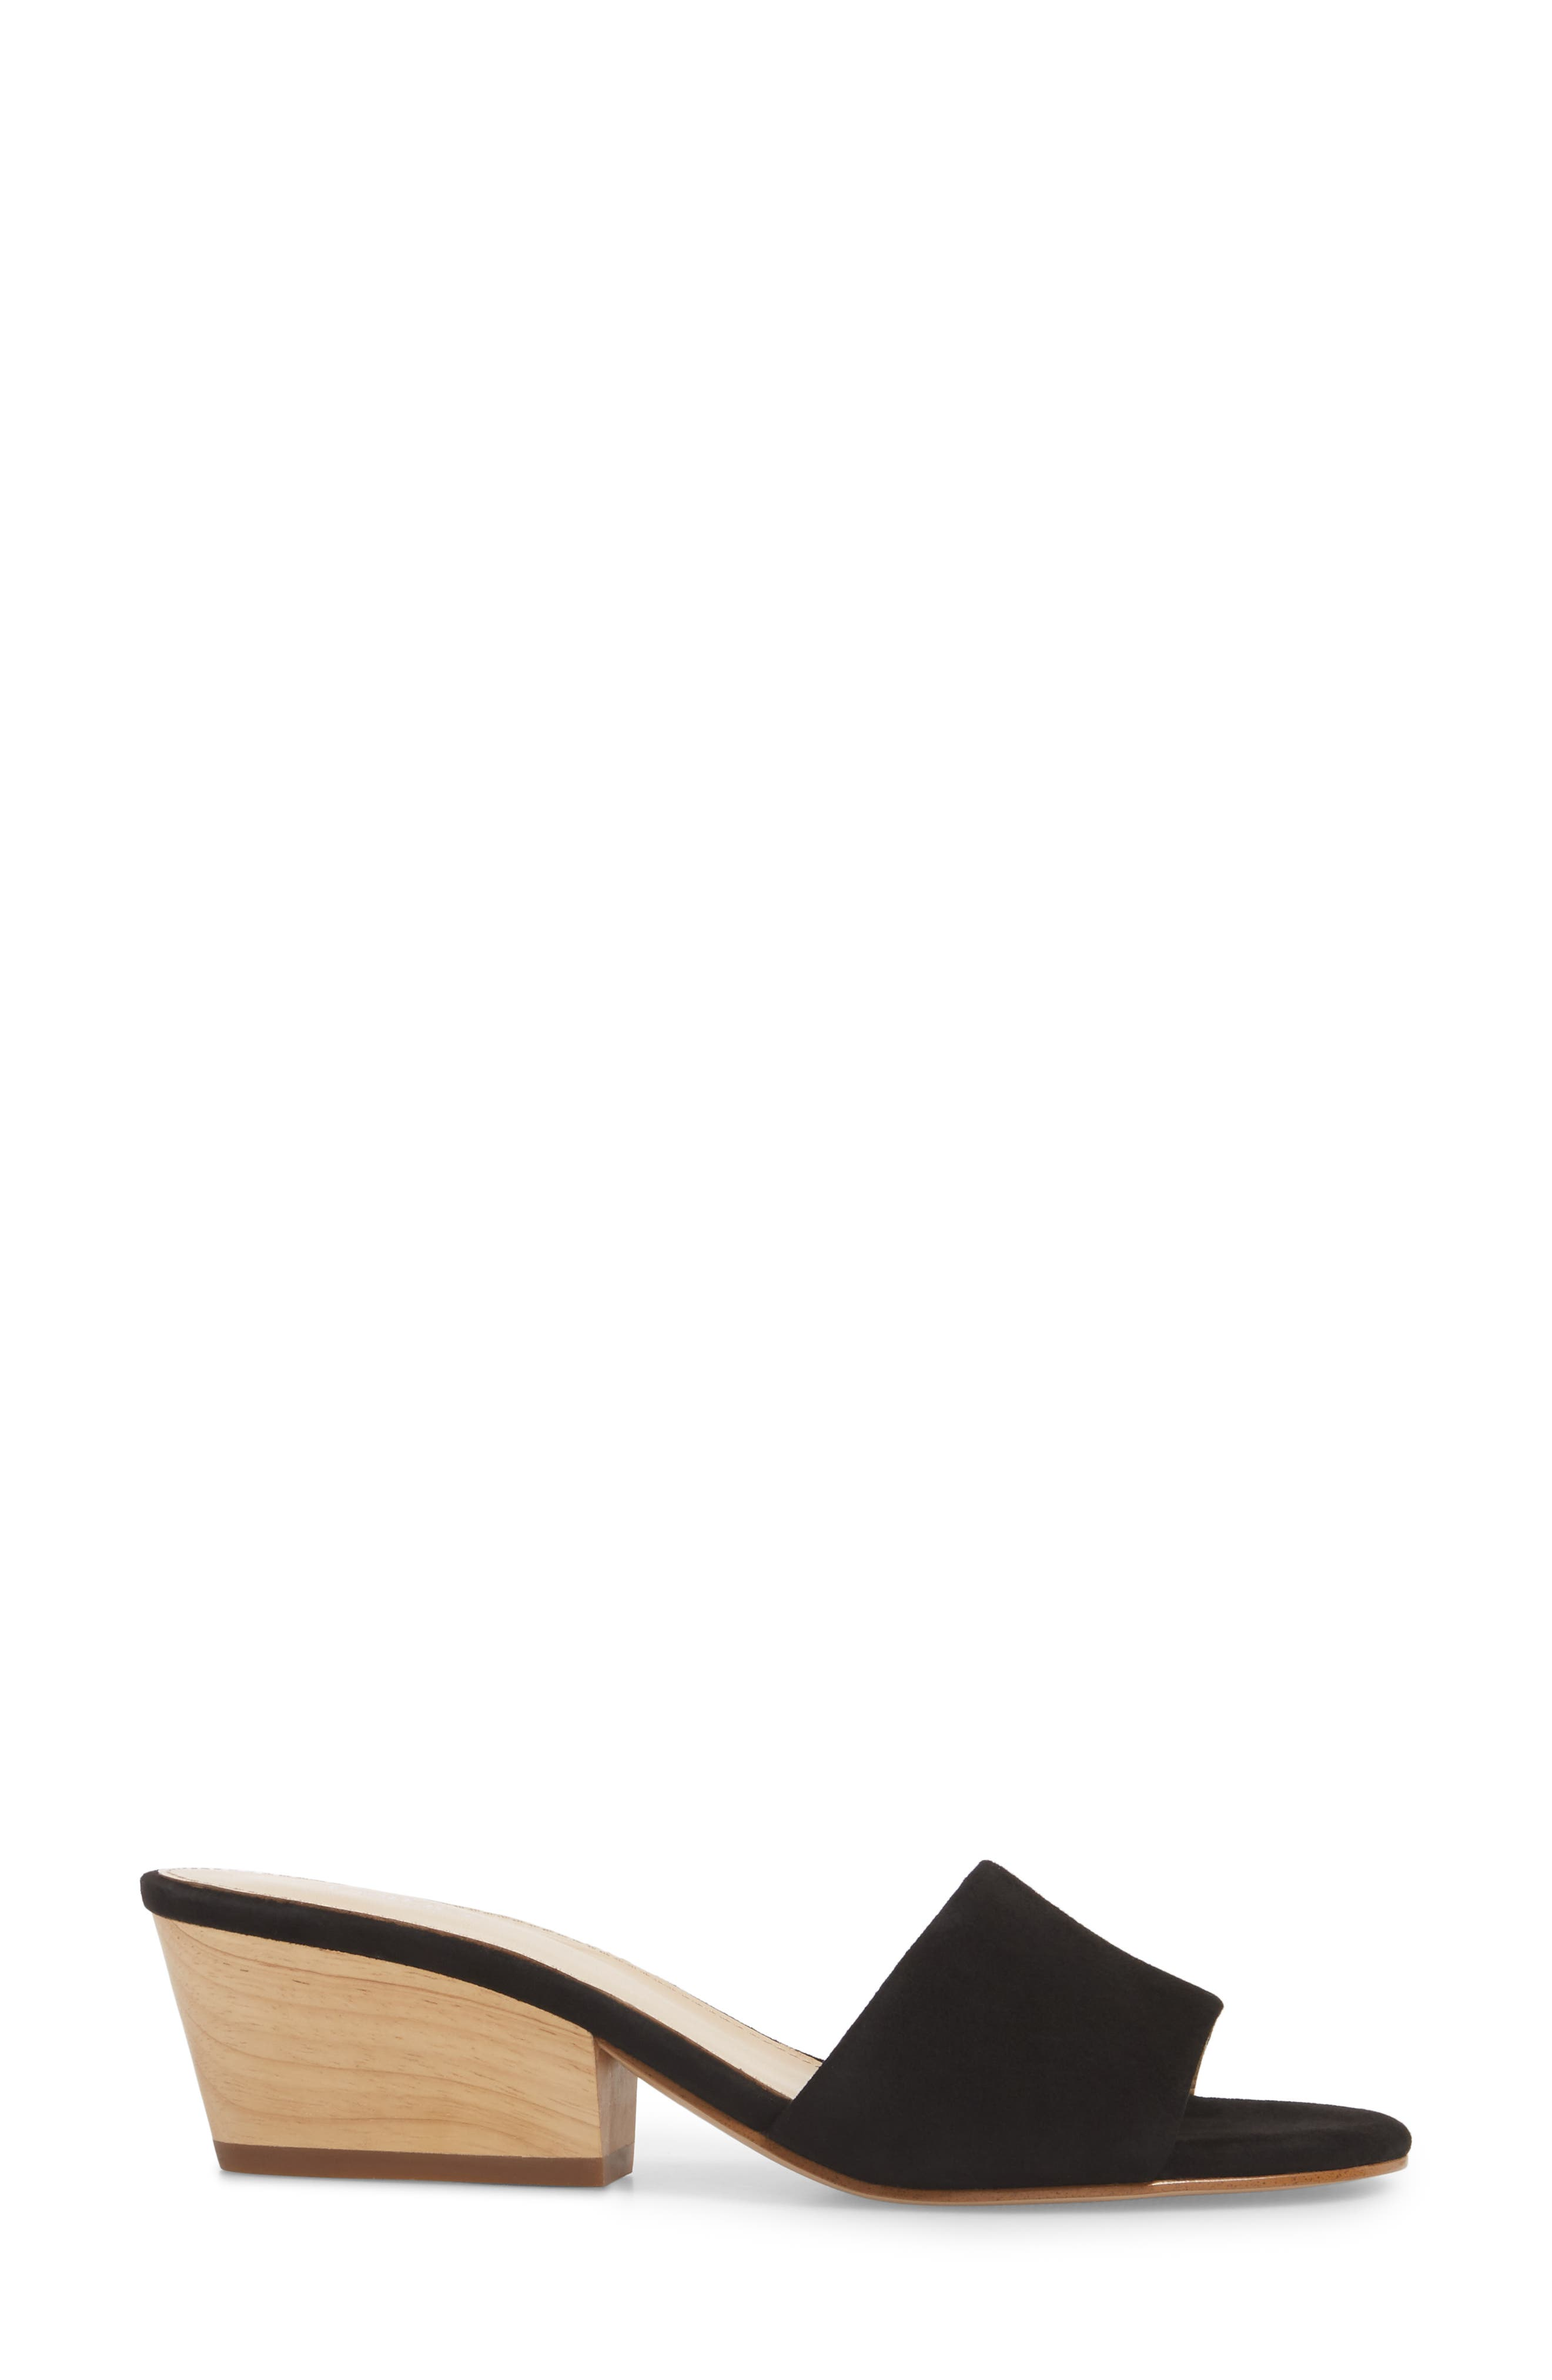 Carlie Mule,                             Alternate thumbnail 3, color,                             BLACK SUEDE